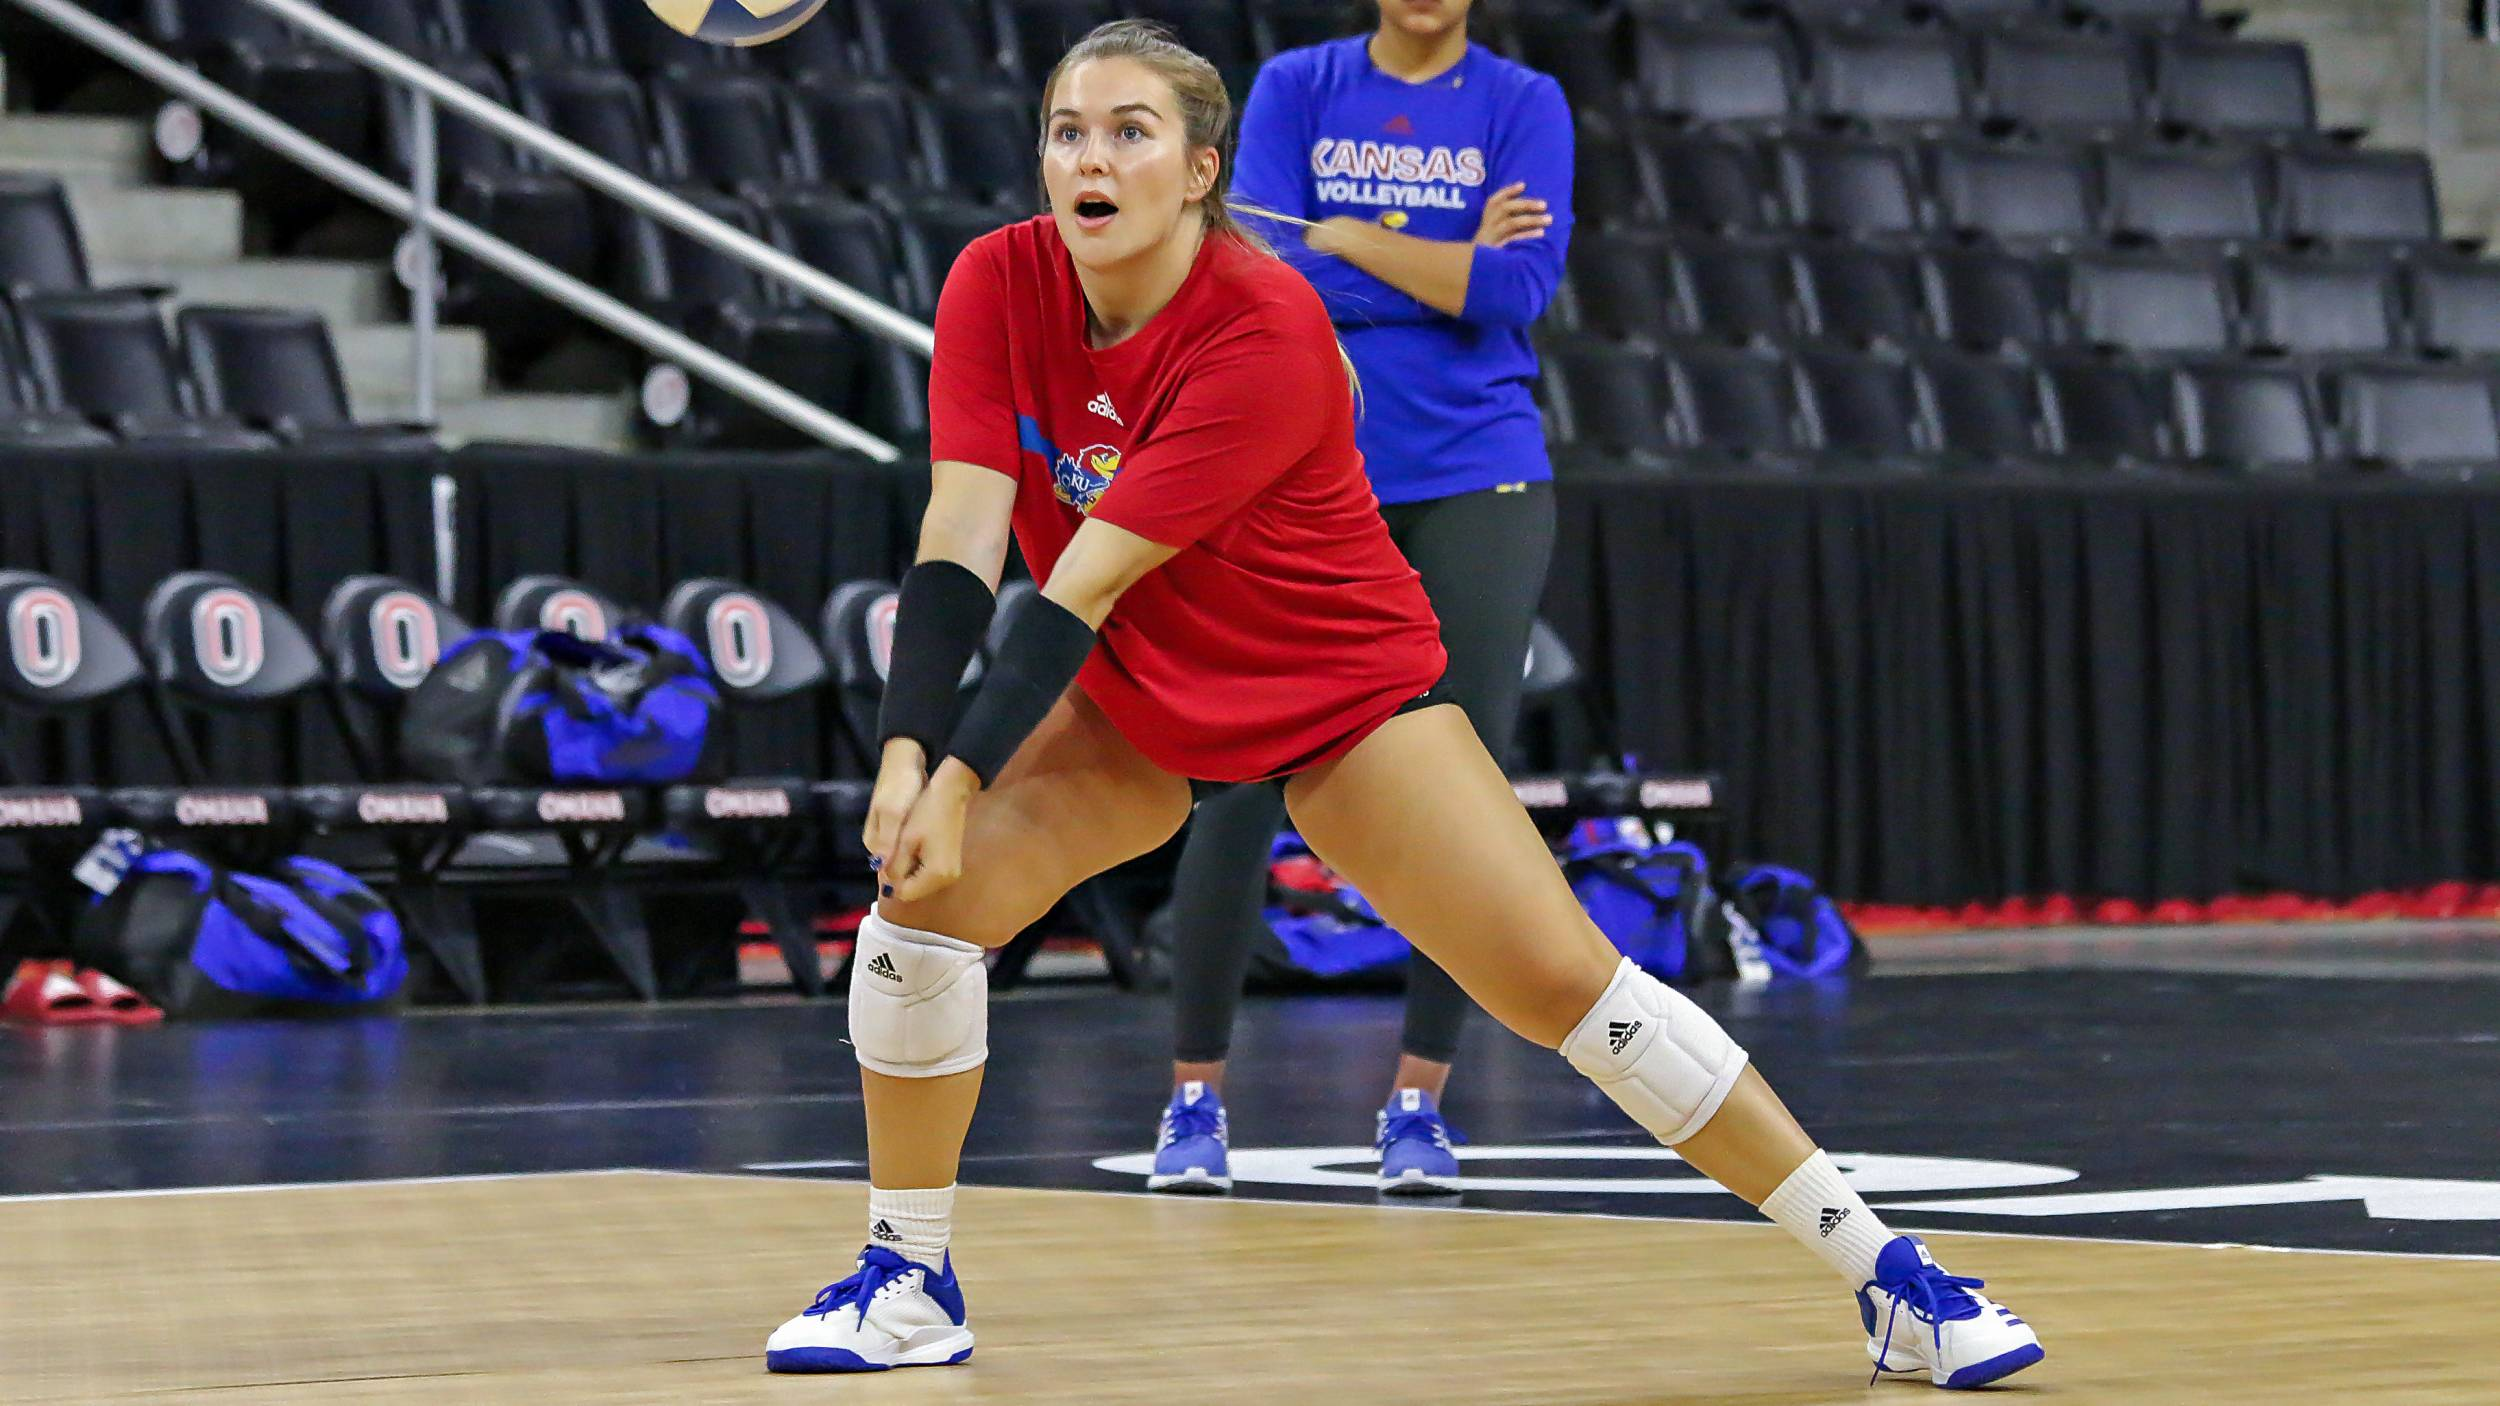 Lacey Angello goes for a dig during practice at Baxter Arena Sept. 3, 2019.